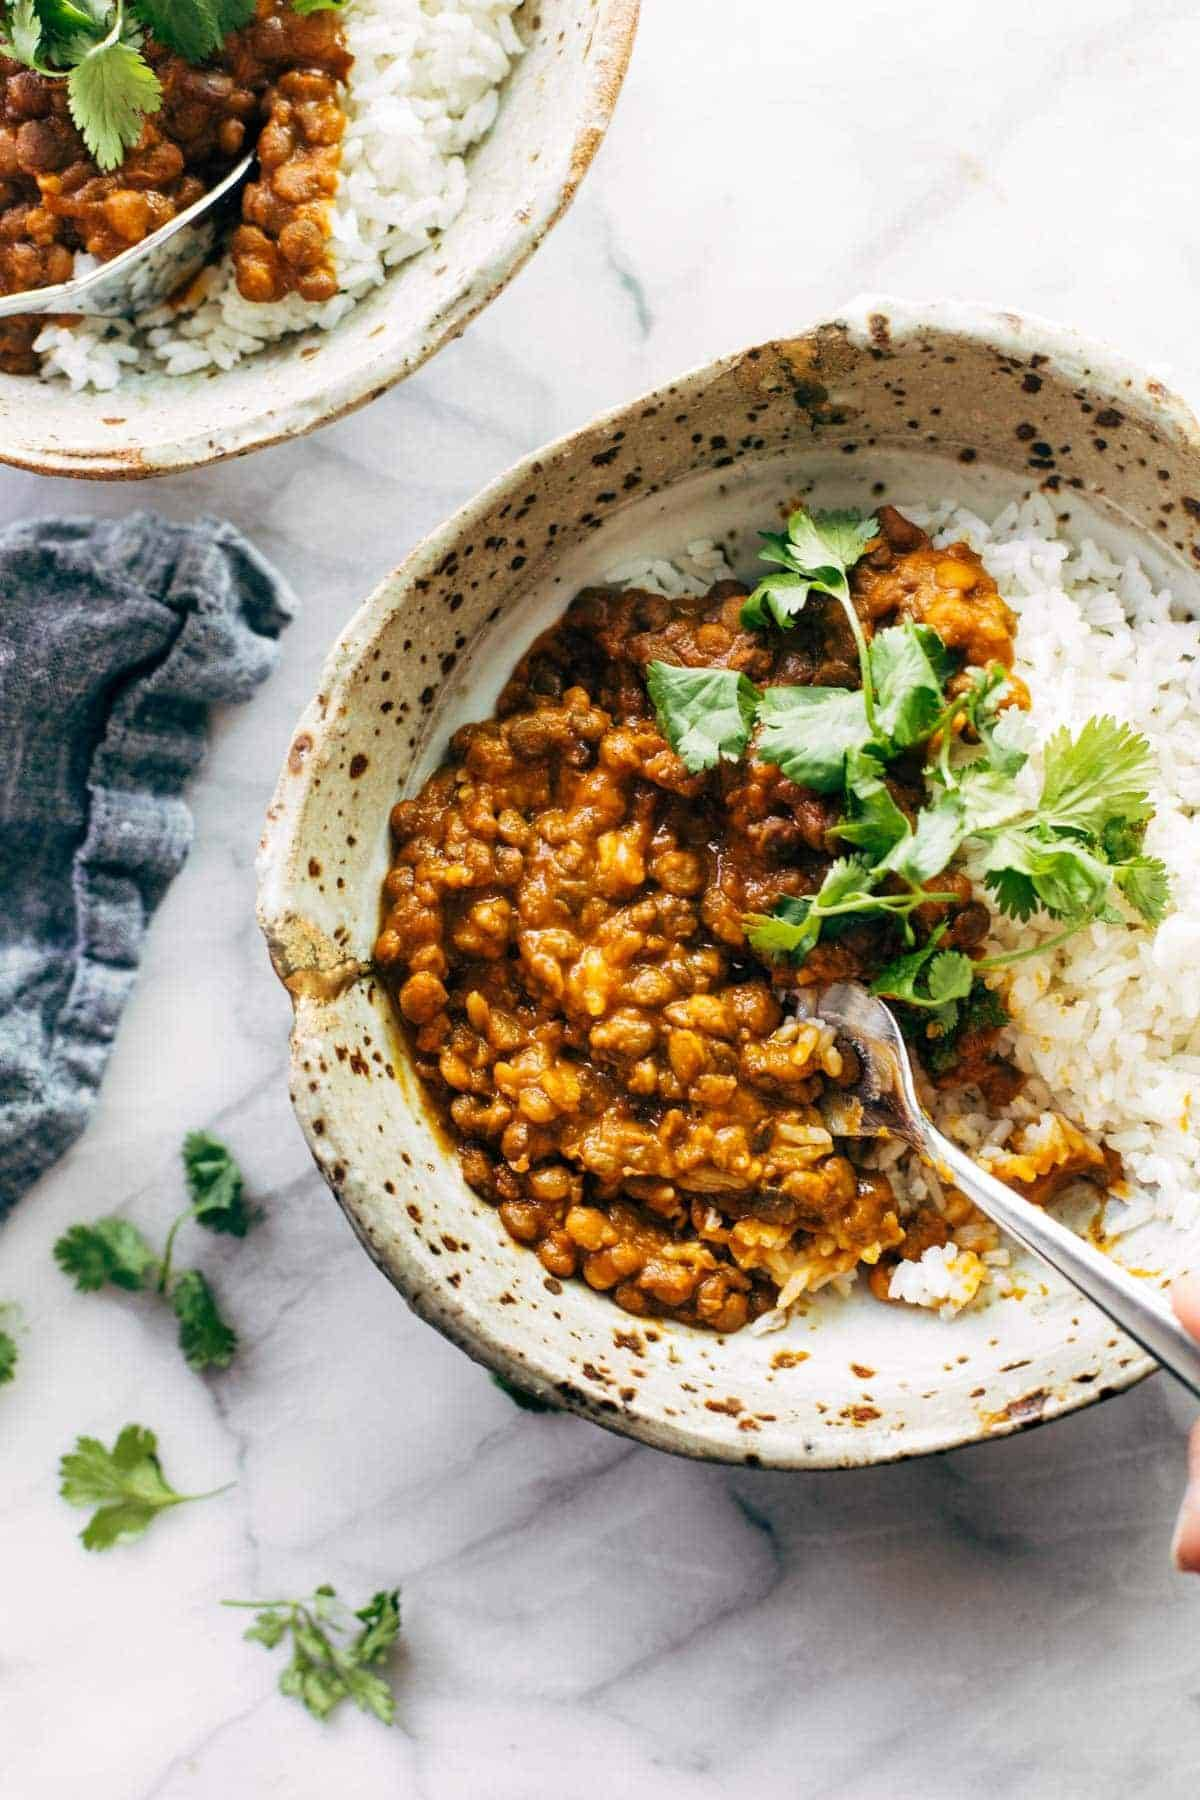 Red curry lentils in a bowl with rice.